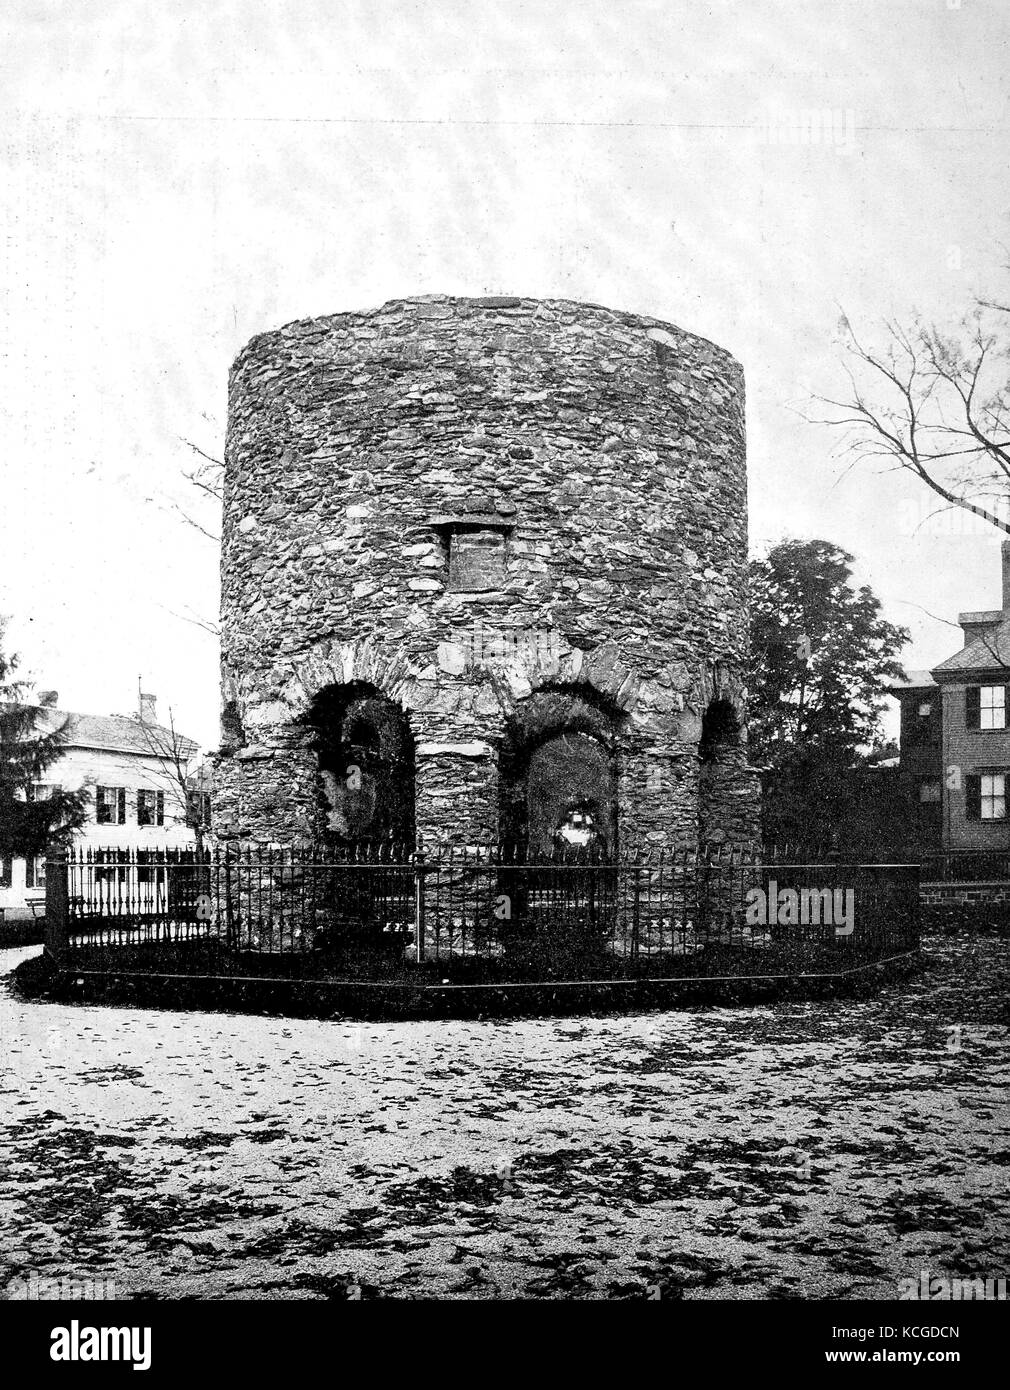 United States of America, the Newport Tower, Newport, Touro Tower, Newport Stone Tower and Old Stone Mill is located - Stock Image